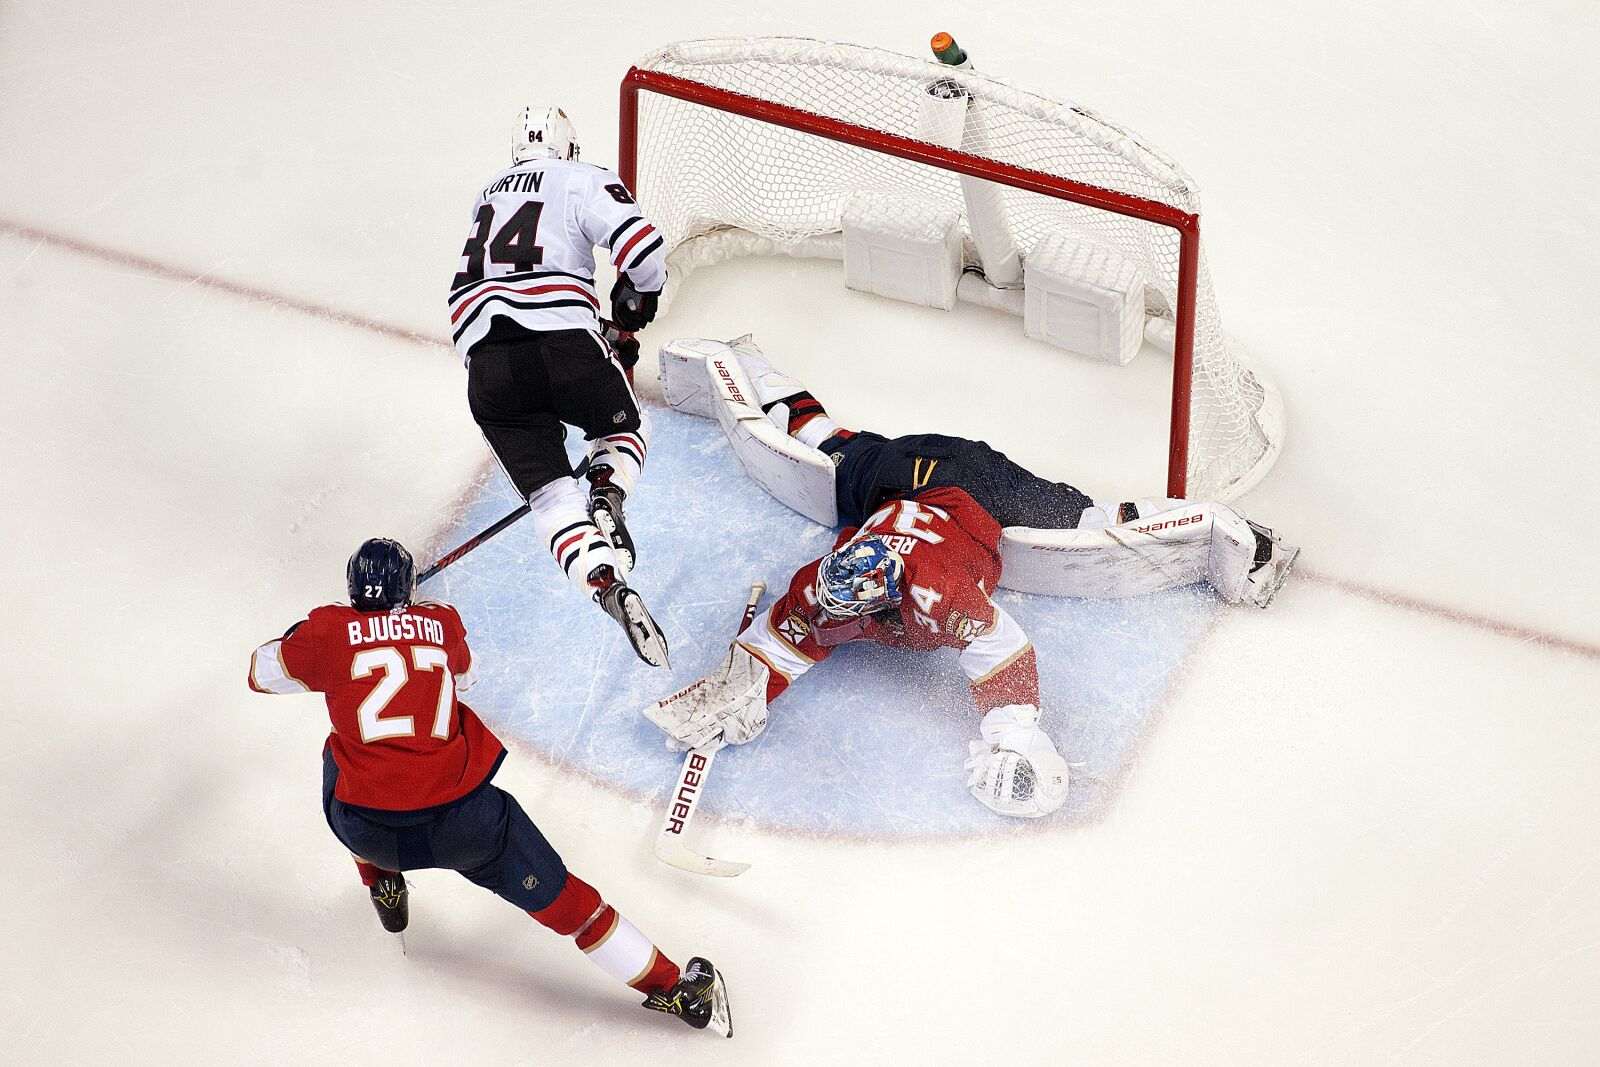 Florida Panthers Lose in Ugliest Fashion Against the Hawks